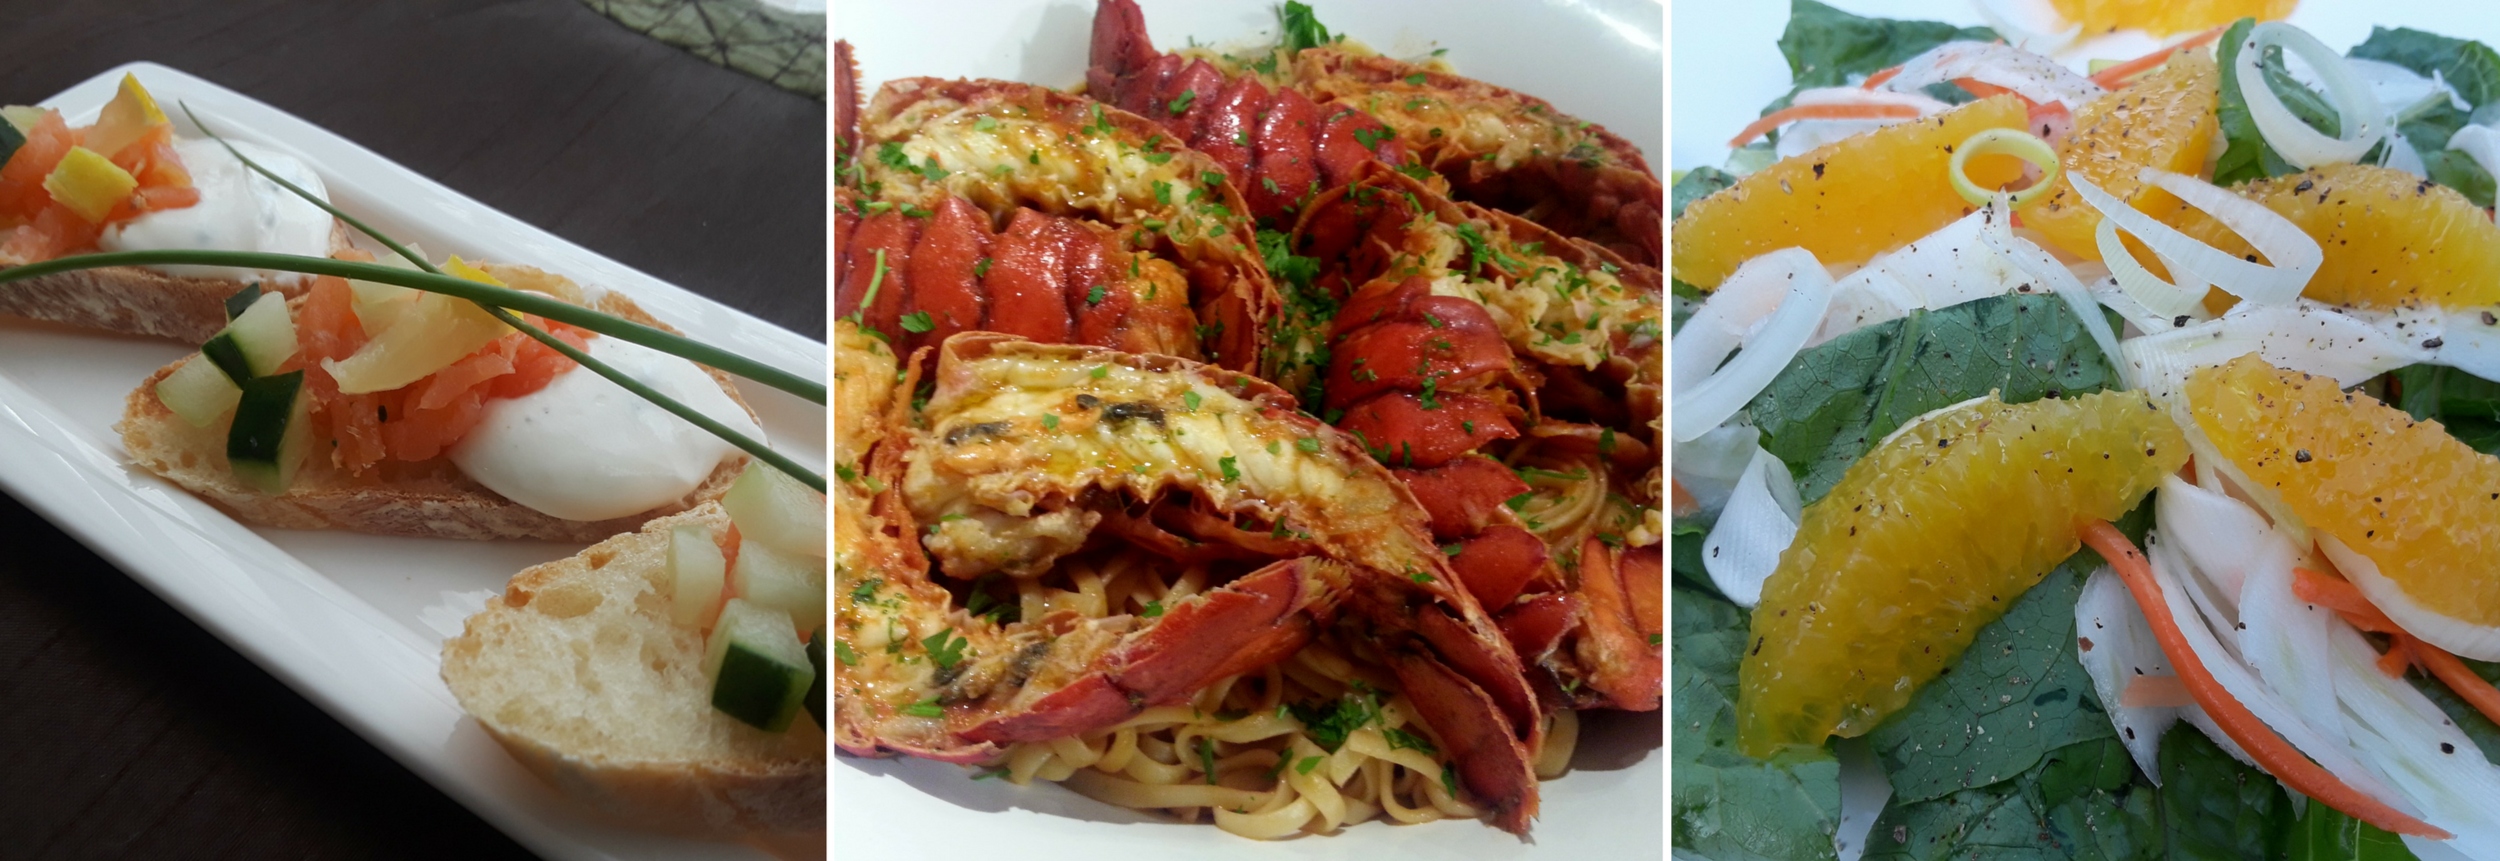 Seafood Amore Mio 2 2017